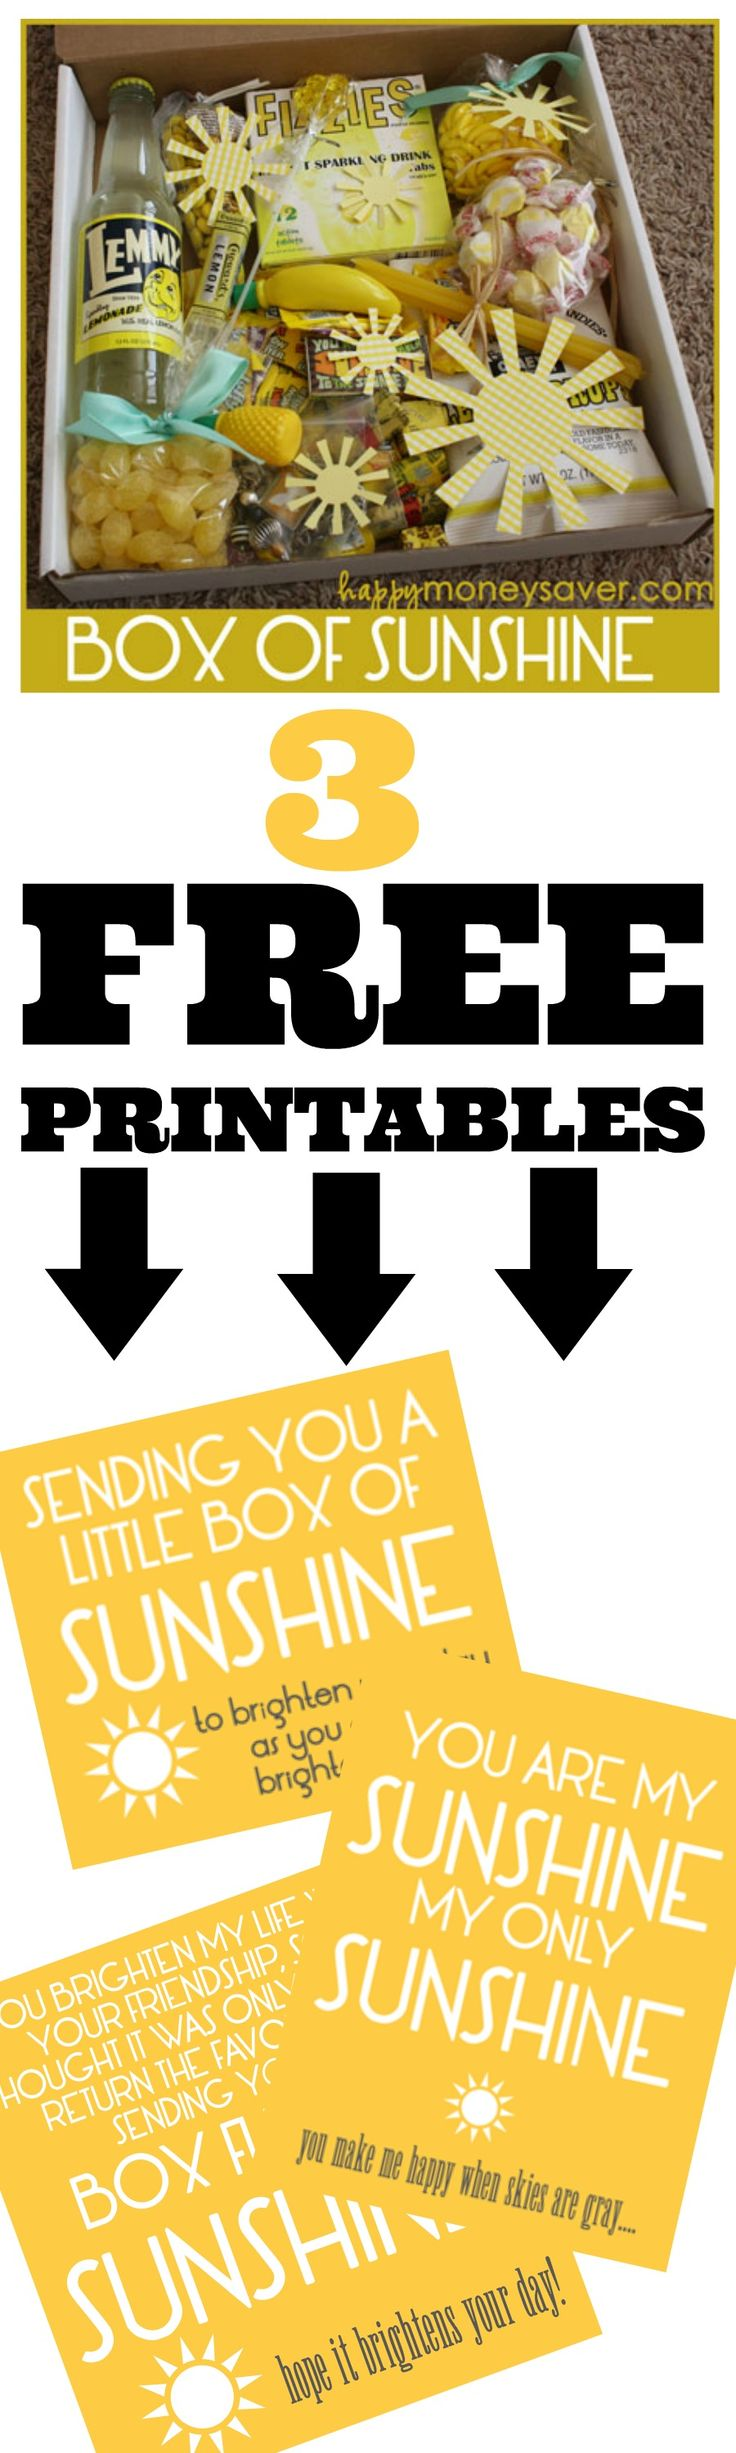 Free printable - Send a Box of Sunshine to brighten someones day! The printables say you are my sunshine, and other fun sayings.